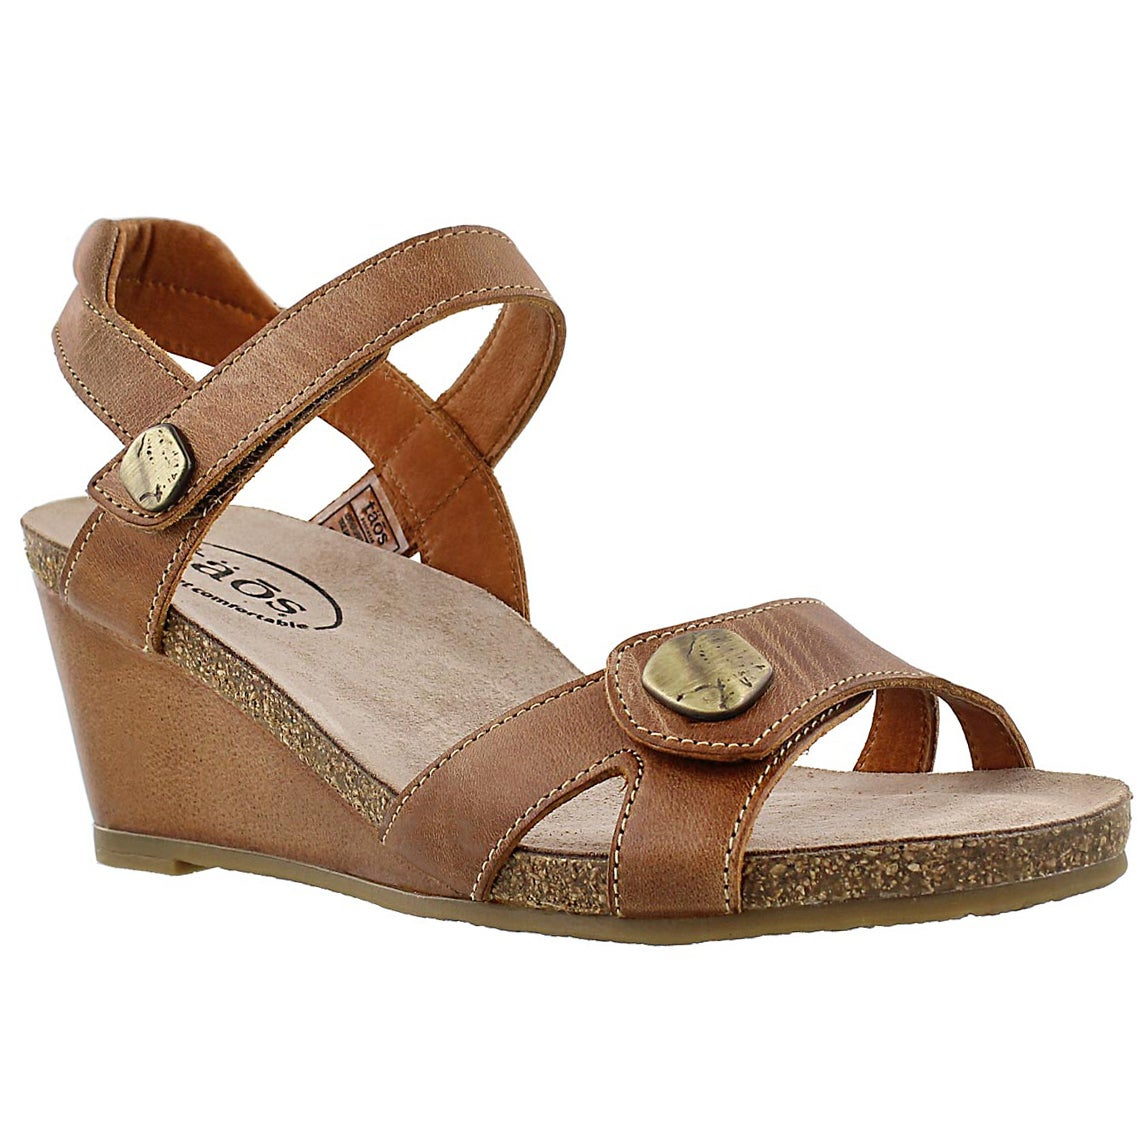 Women's CHARADE camel wedge sandals